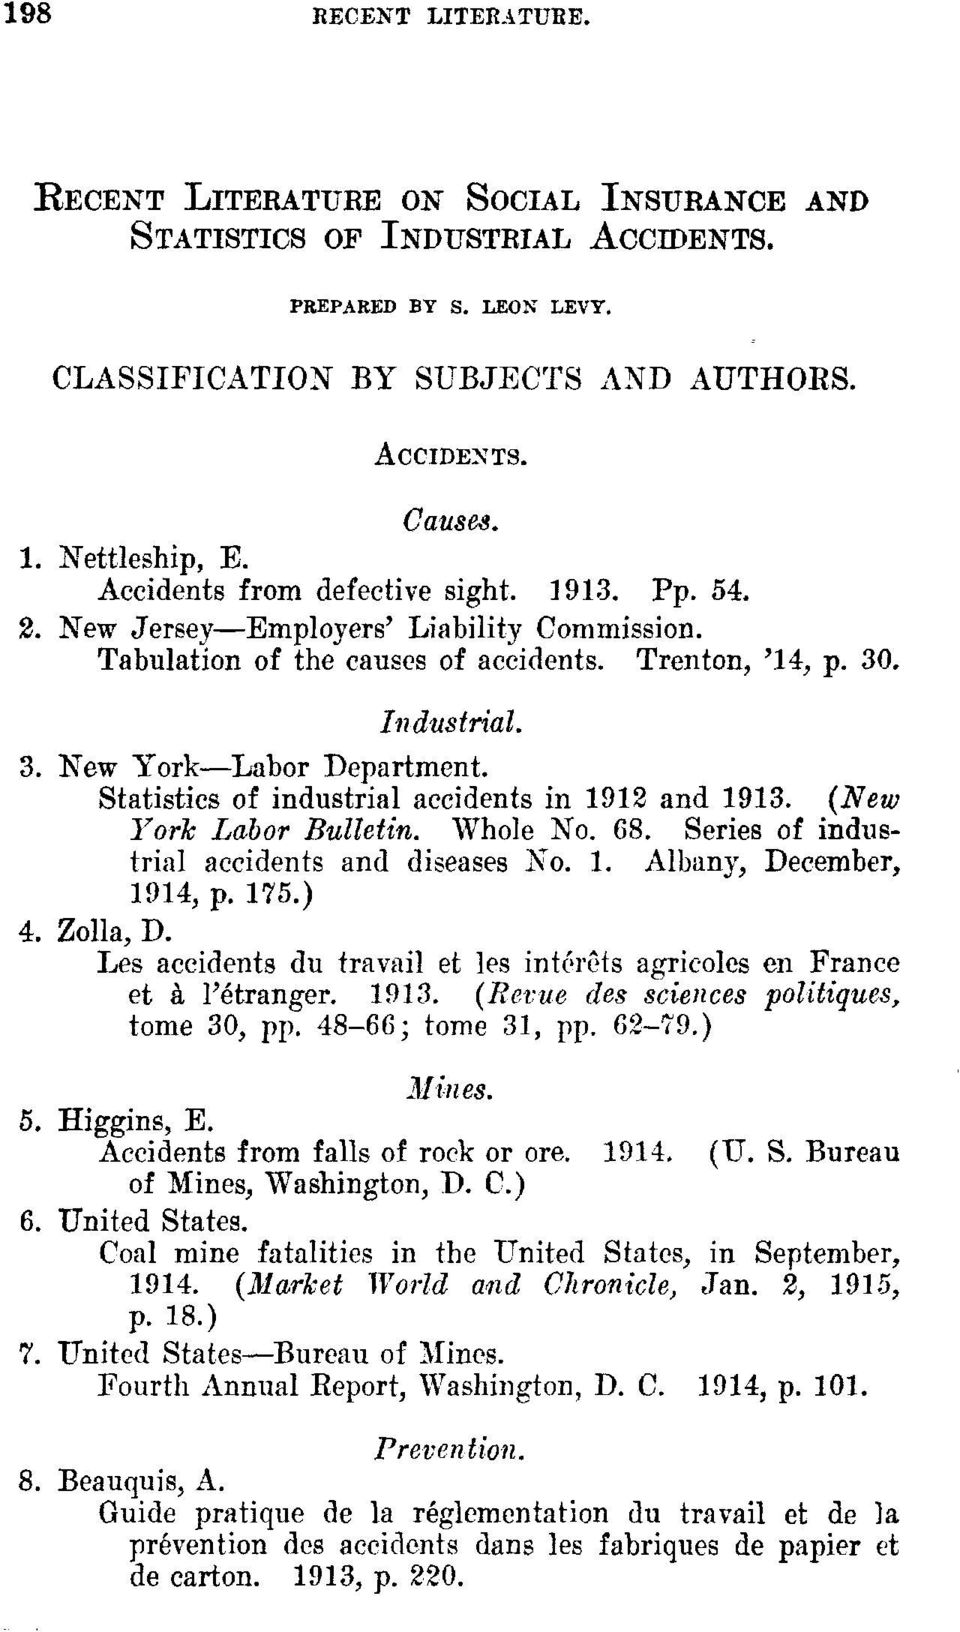 :New York Labor Department. Statistics of industrial accidents in 1912 and 1913. (New York Labor Bulletin. Whole No. 68. Series of industrial accidents and diseases No. 1. Albany, December, 1914, p.